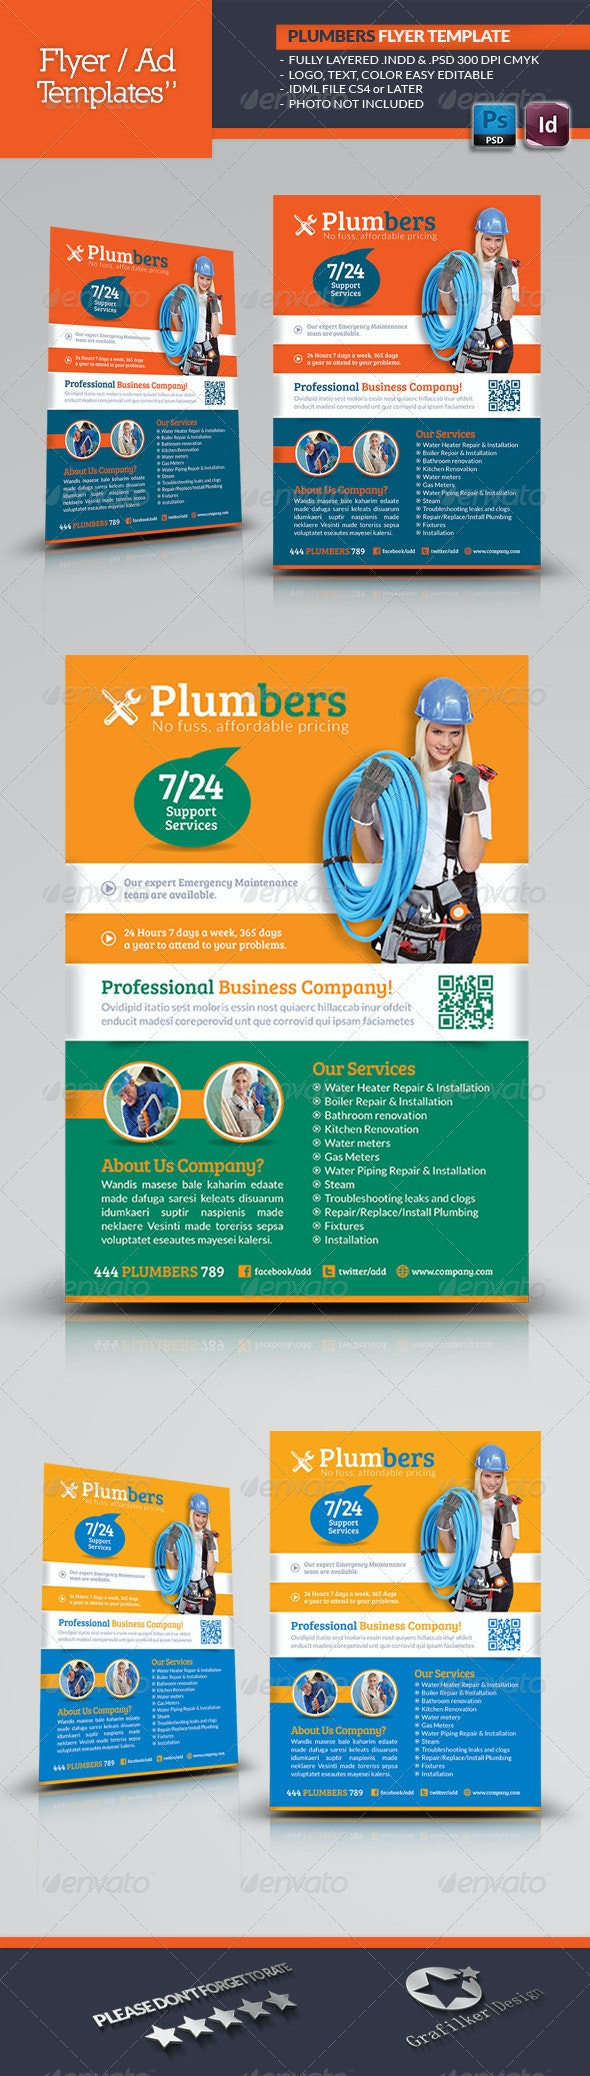 Plumbers Flyer Template - Corporate Flyers